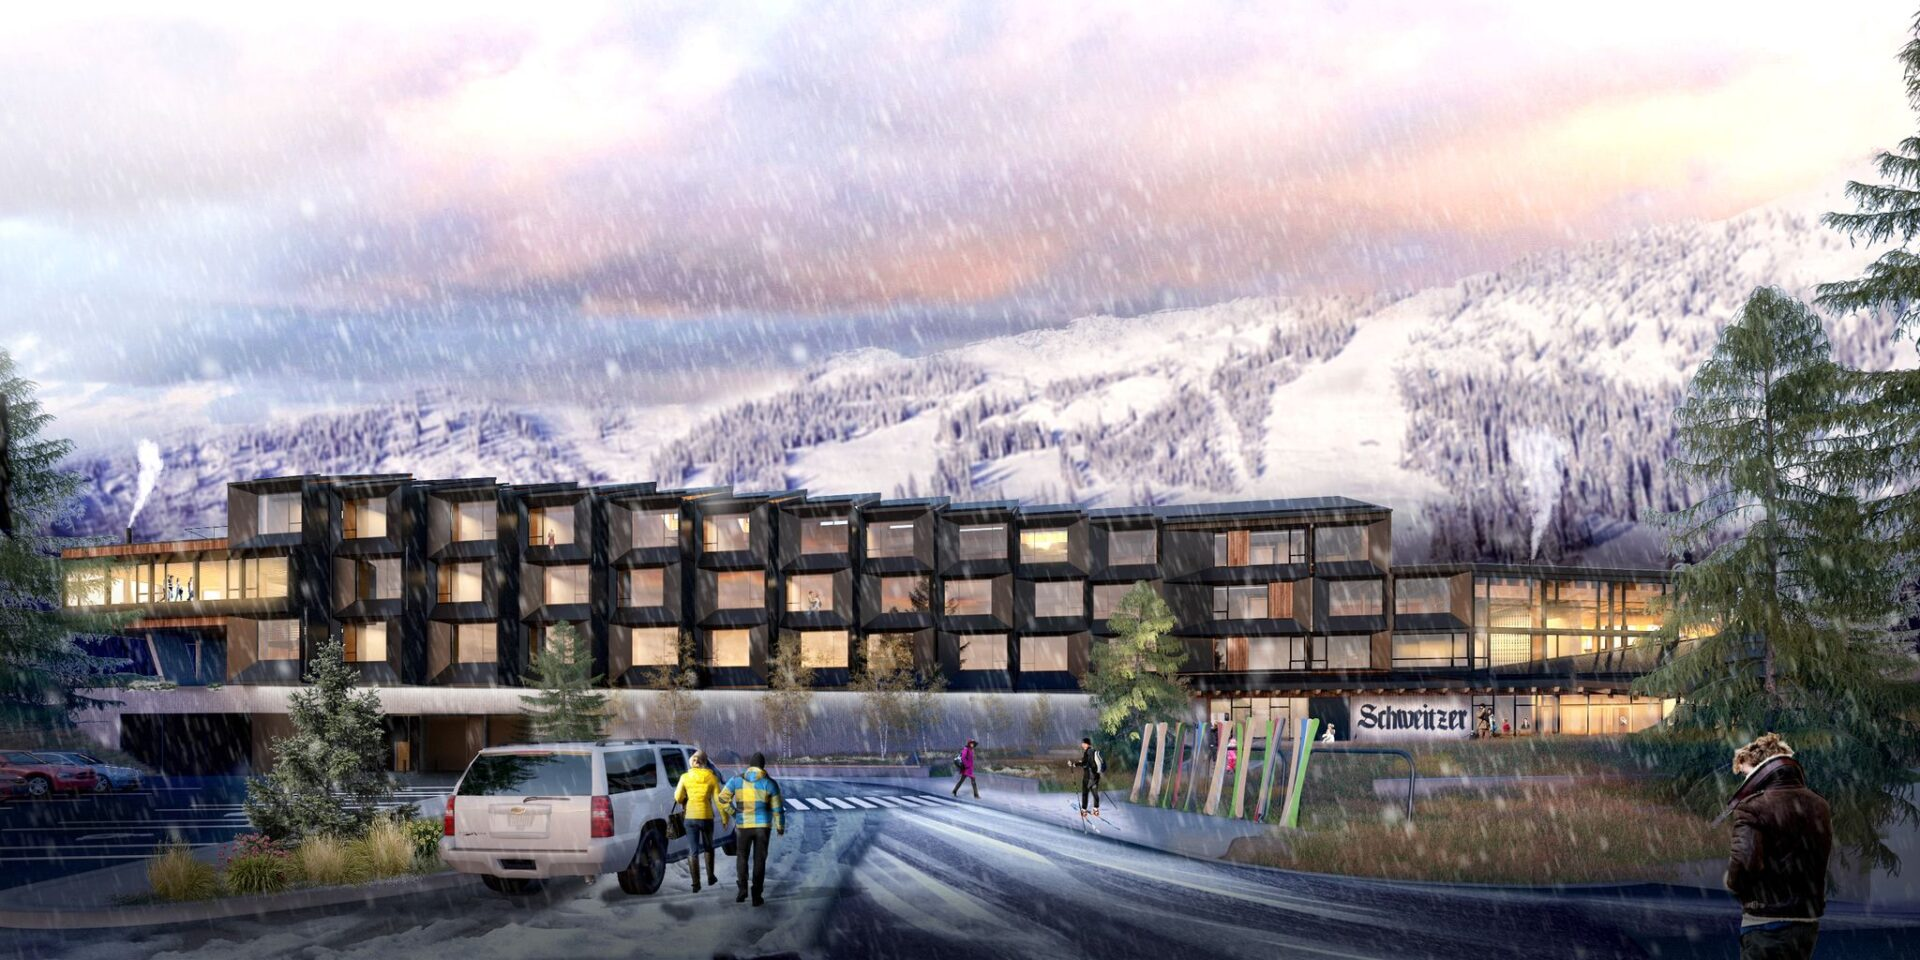 Artistic rendering of the new Humbird hotel, as viewed from Lakeview parking lot, with snowy ski runs in the background.